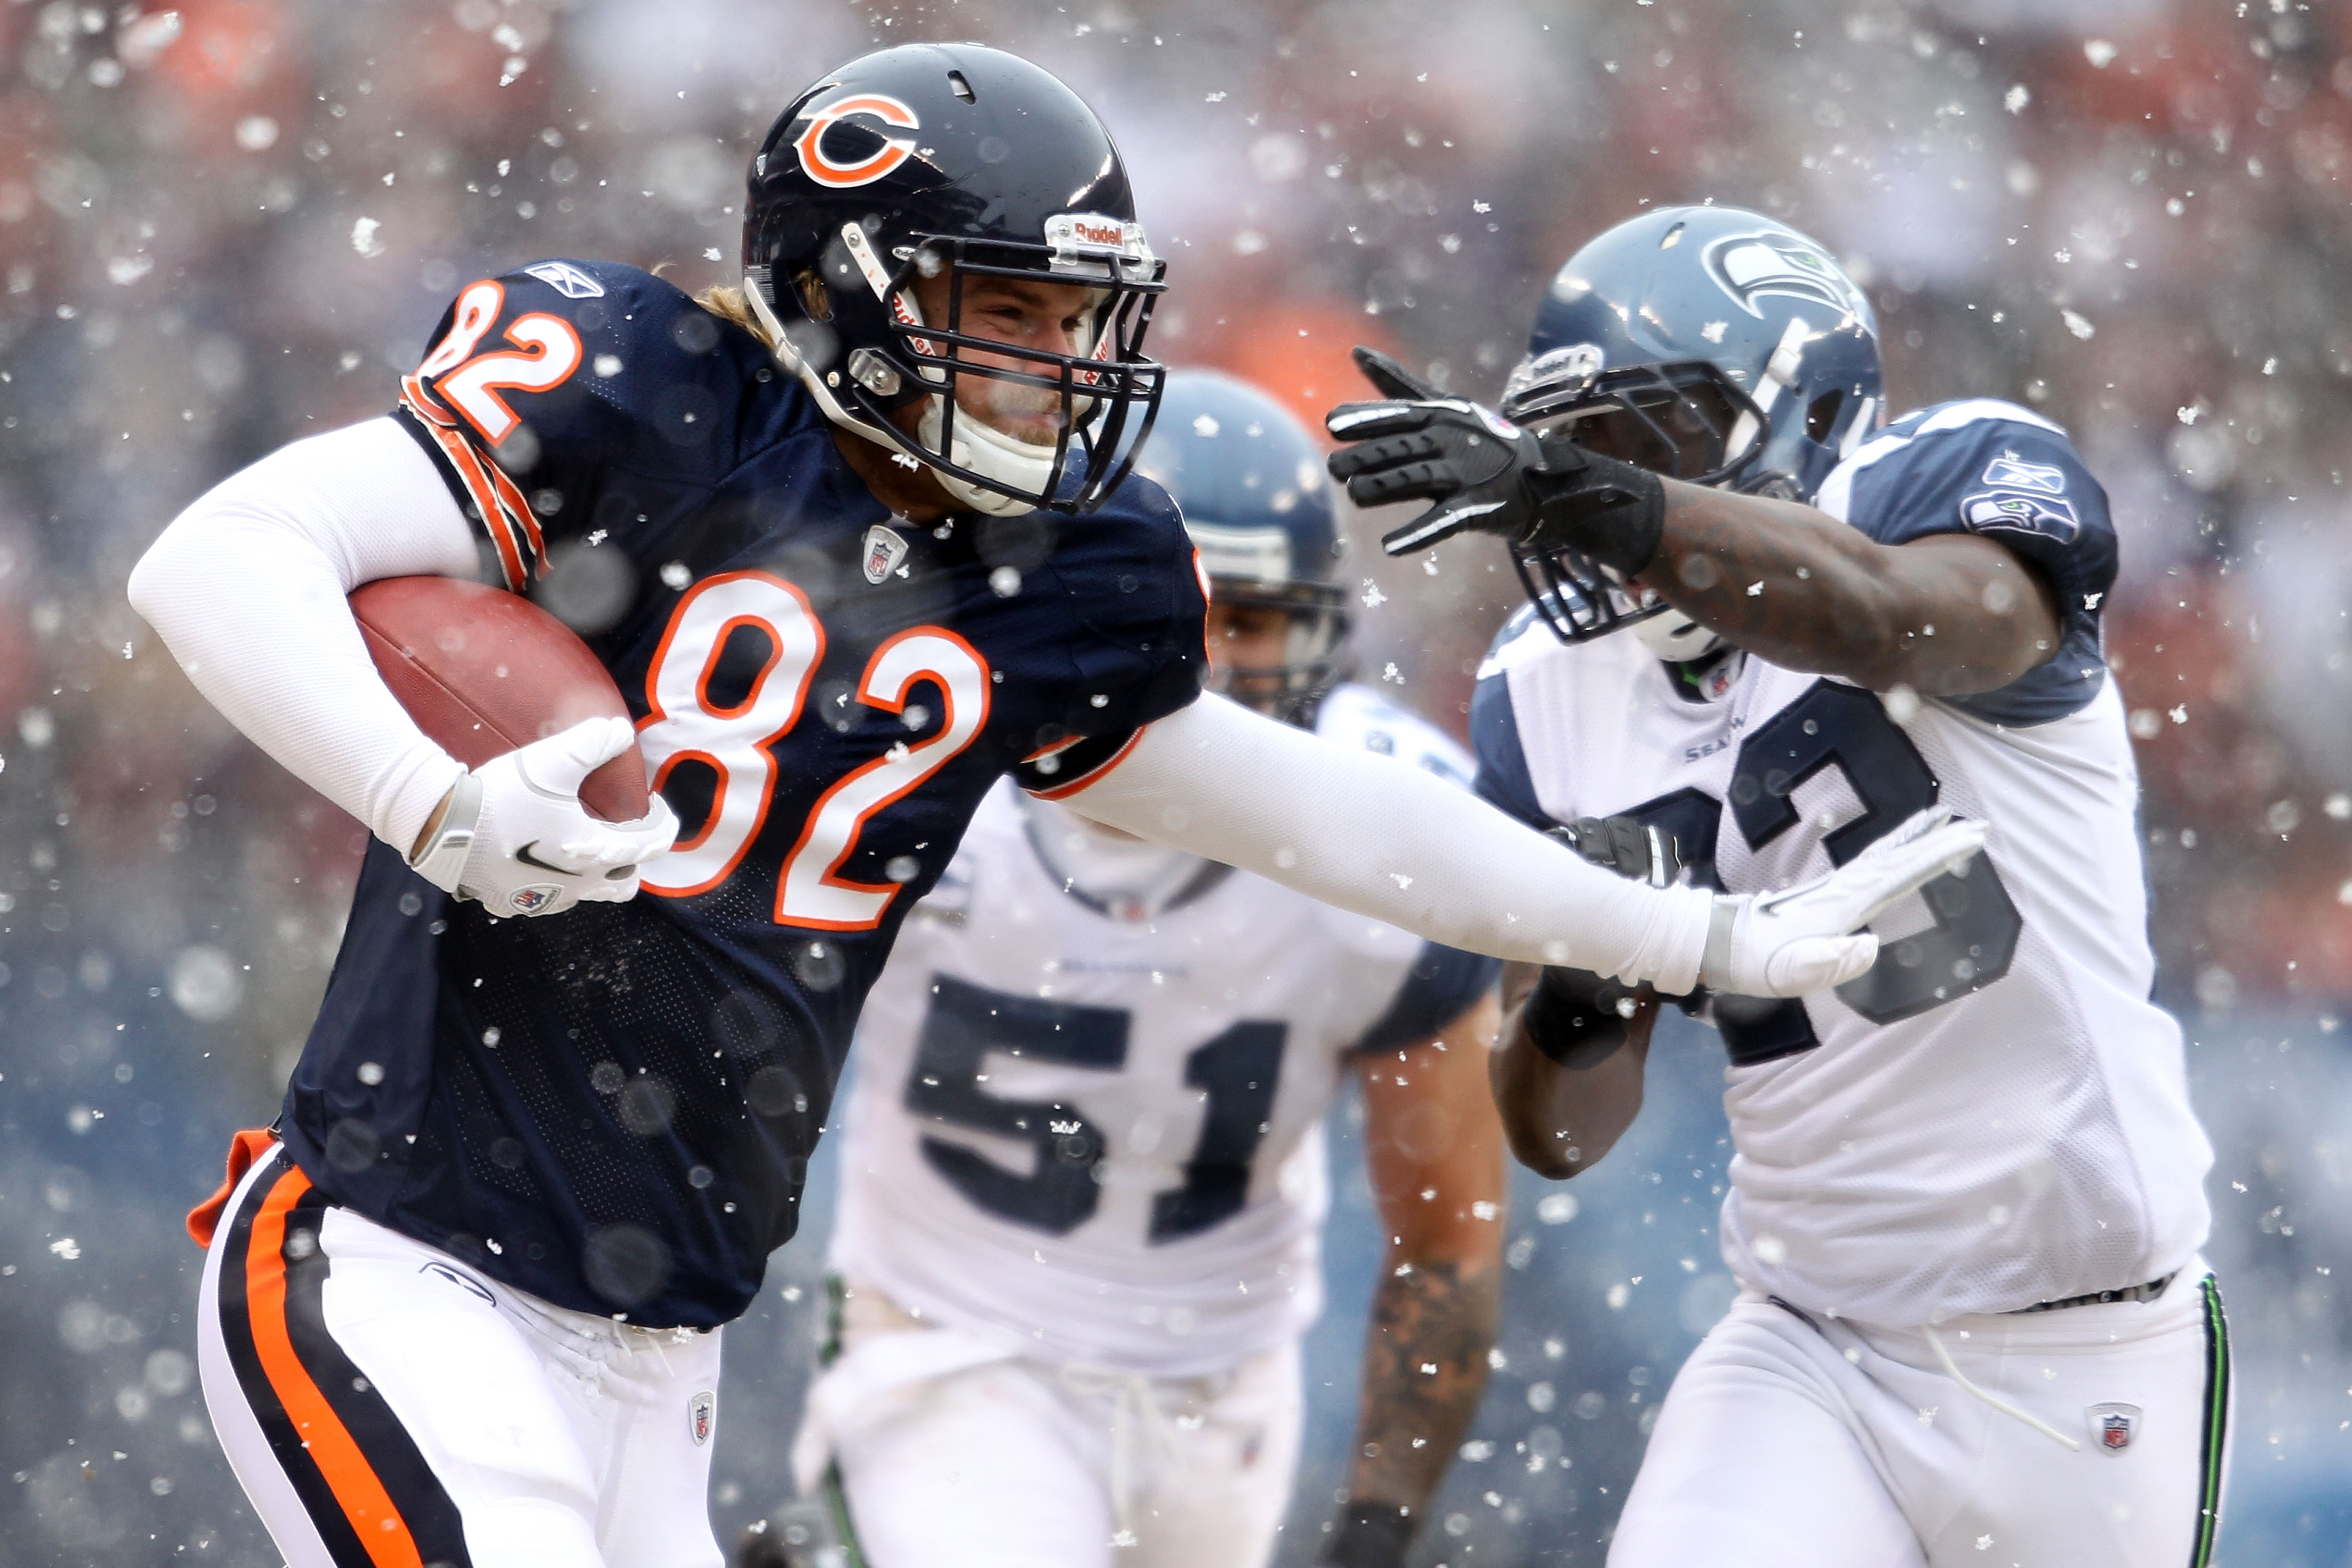 CHICAGO, IL - JANUARY 16:  Tight end Greg Olsen #82 of the Chicago Bears runs after a catch for 33-yards against the Seattle Seahawks in the first quarter of the 2011 NFC divisional playoff game at Soldier Field on January 16, 2011 in Chicago, Illinois.